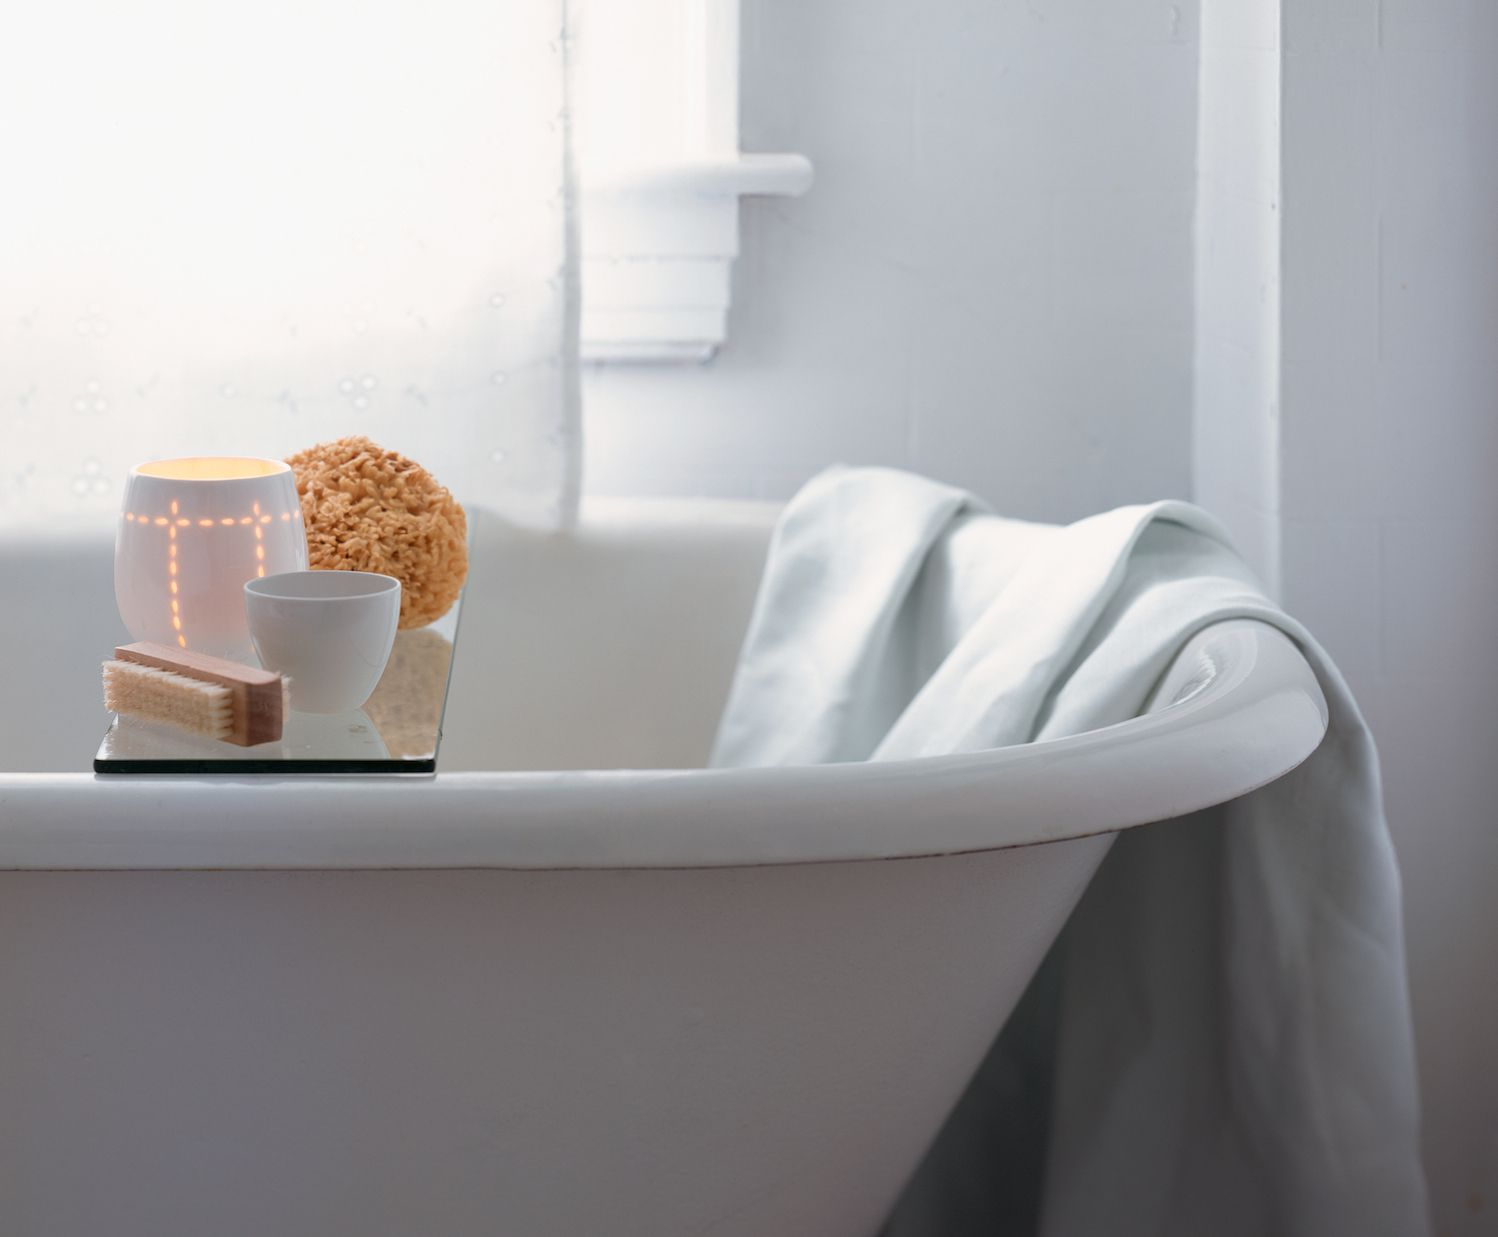 Feng shui tips bathroom in the center of your home for Feng shui bathroom design